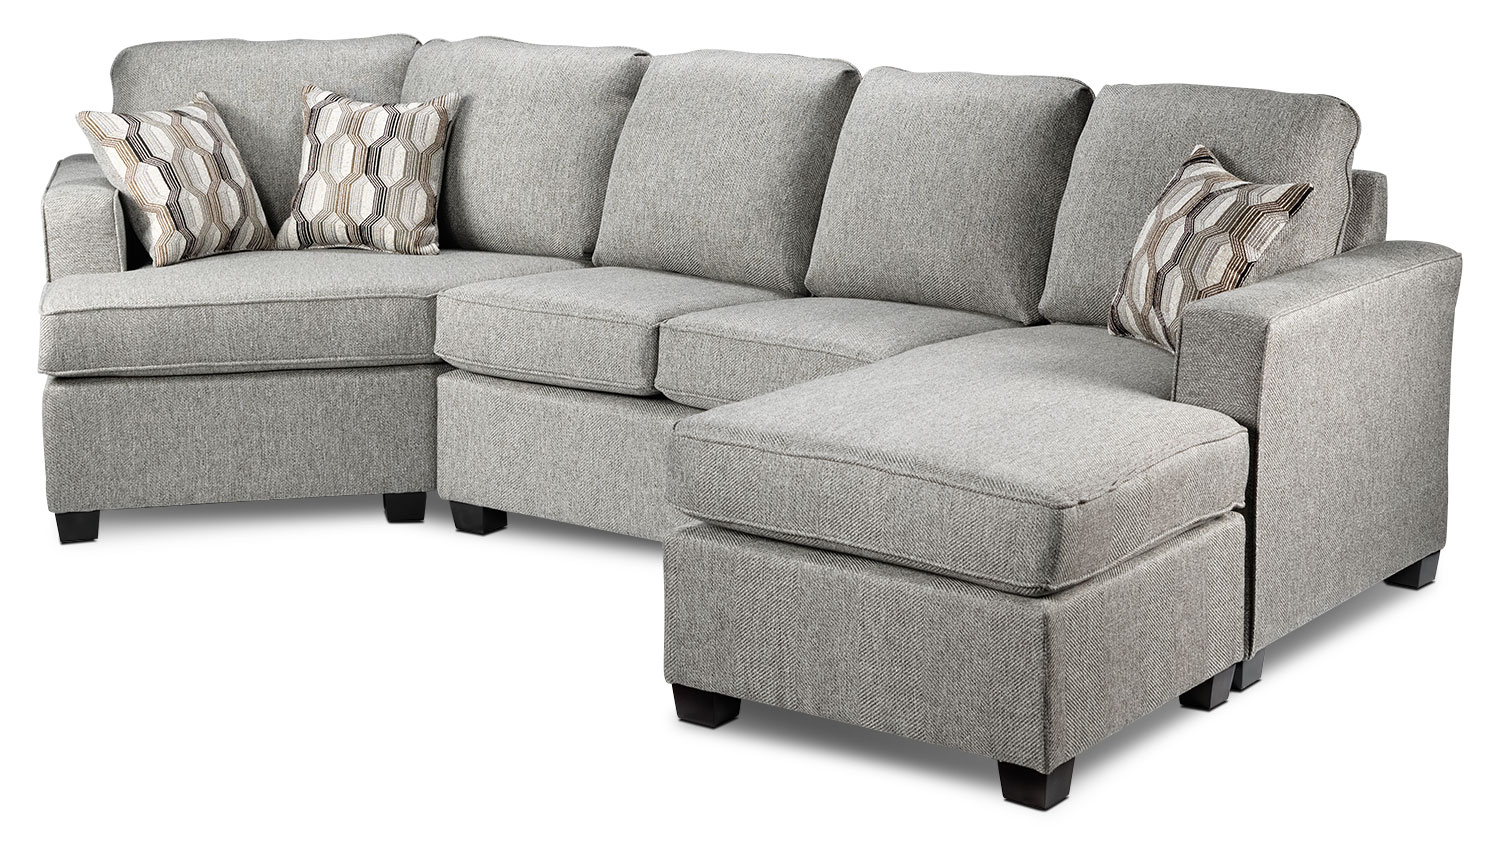 Downtown 2-Piece Right-Facing Sectional - Grey